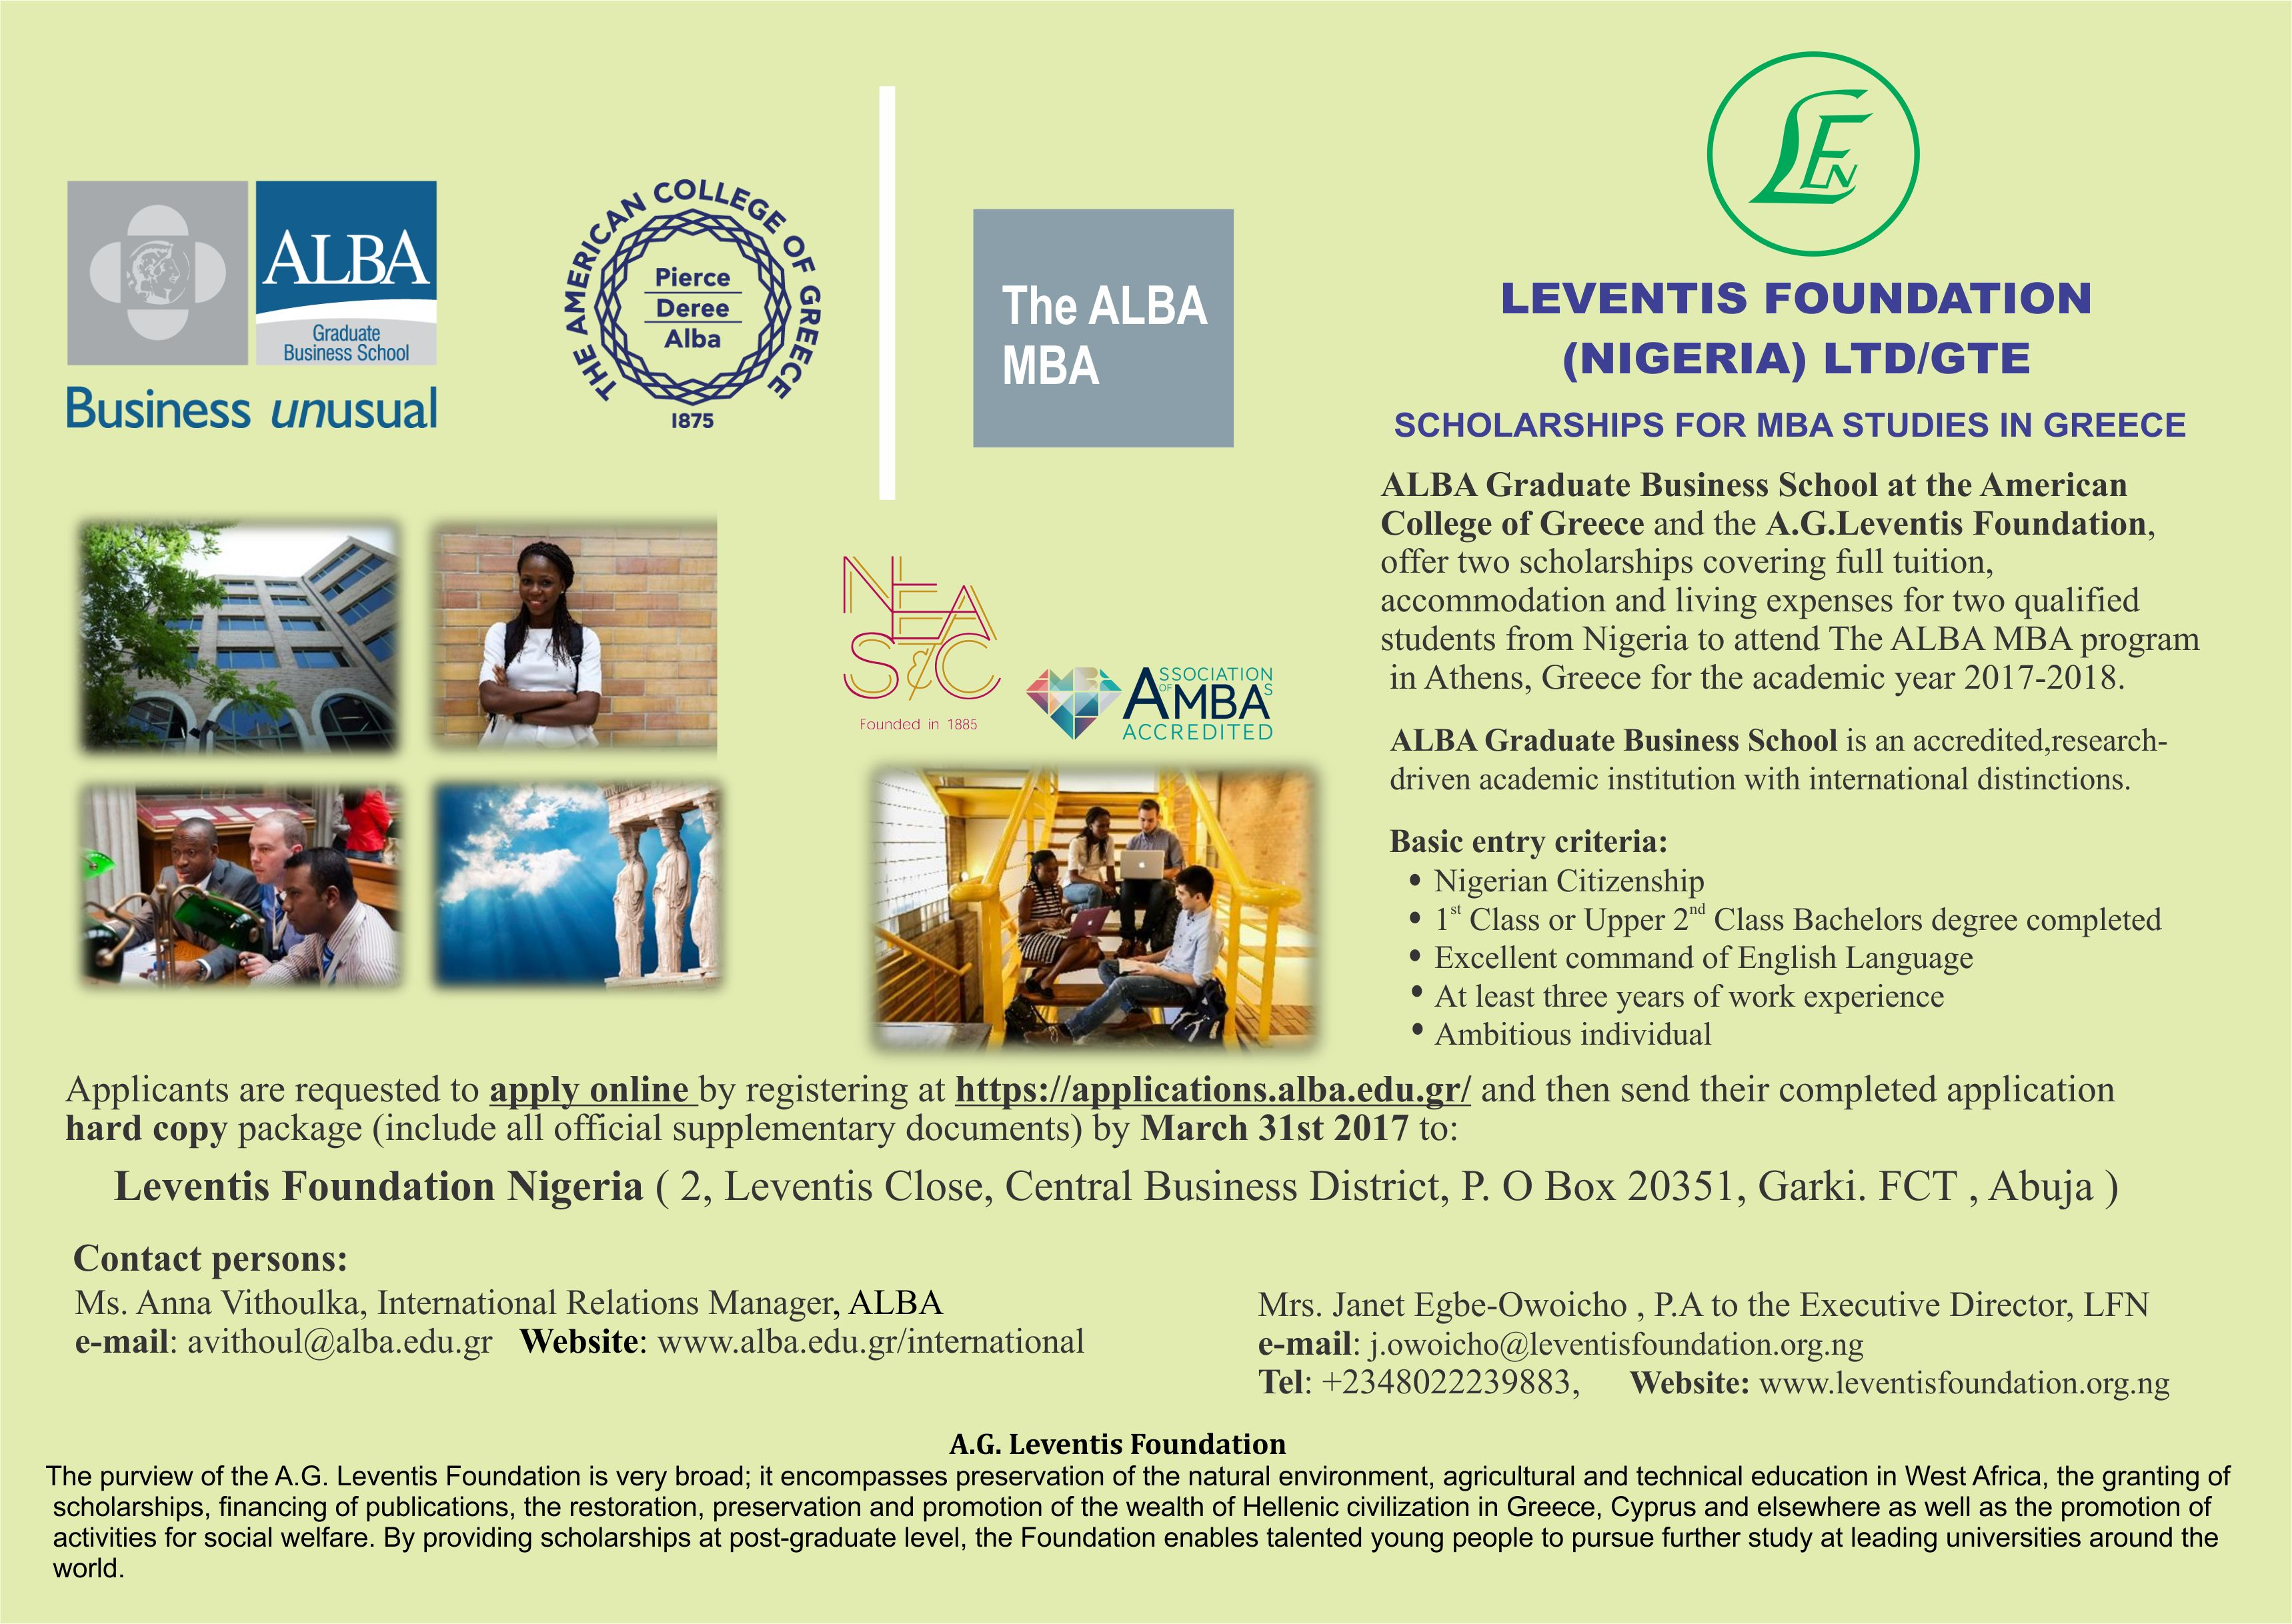 Leventis Foundation 2017/2018 Scholarship for ALBA Graduate, MBA